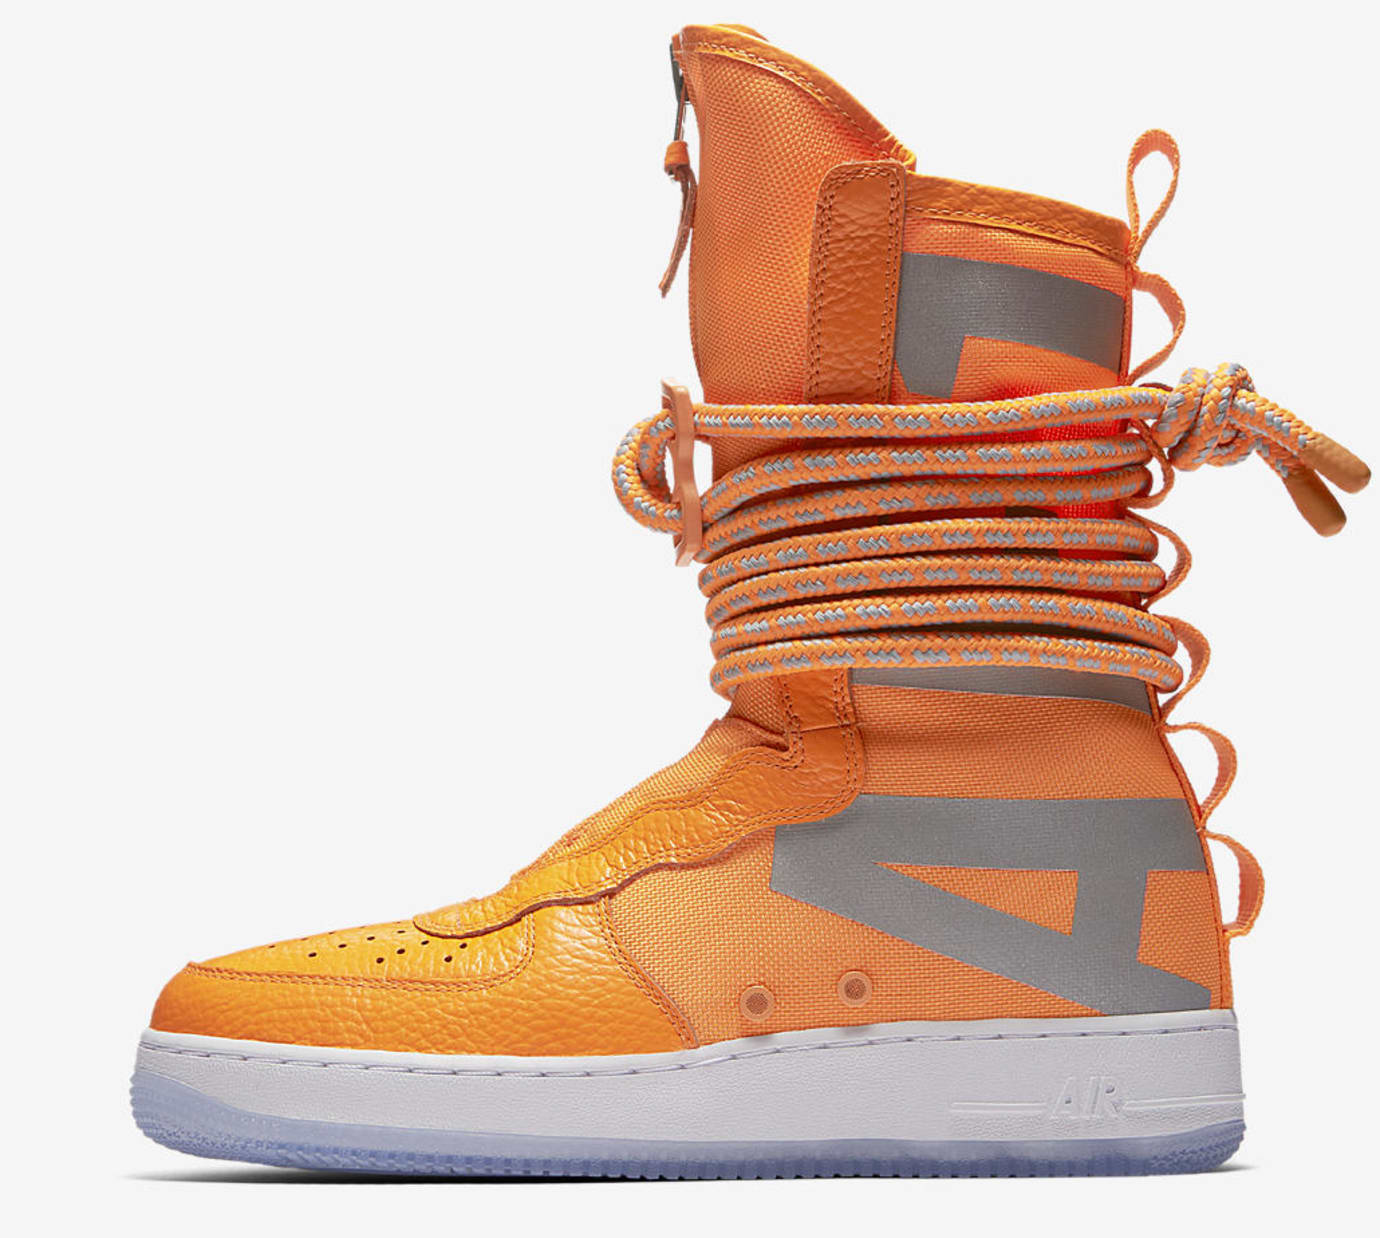 f7654cc0c1d Nike SF Air Force 1 High Release Date | Sole Collector